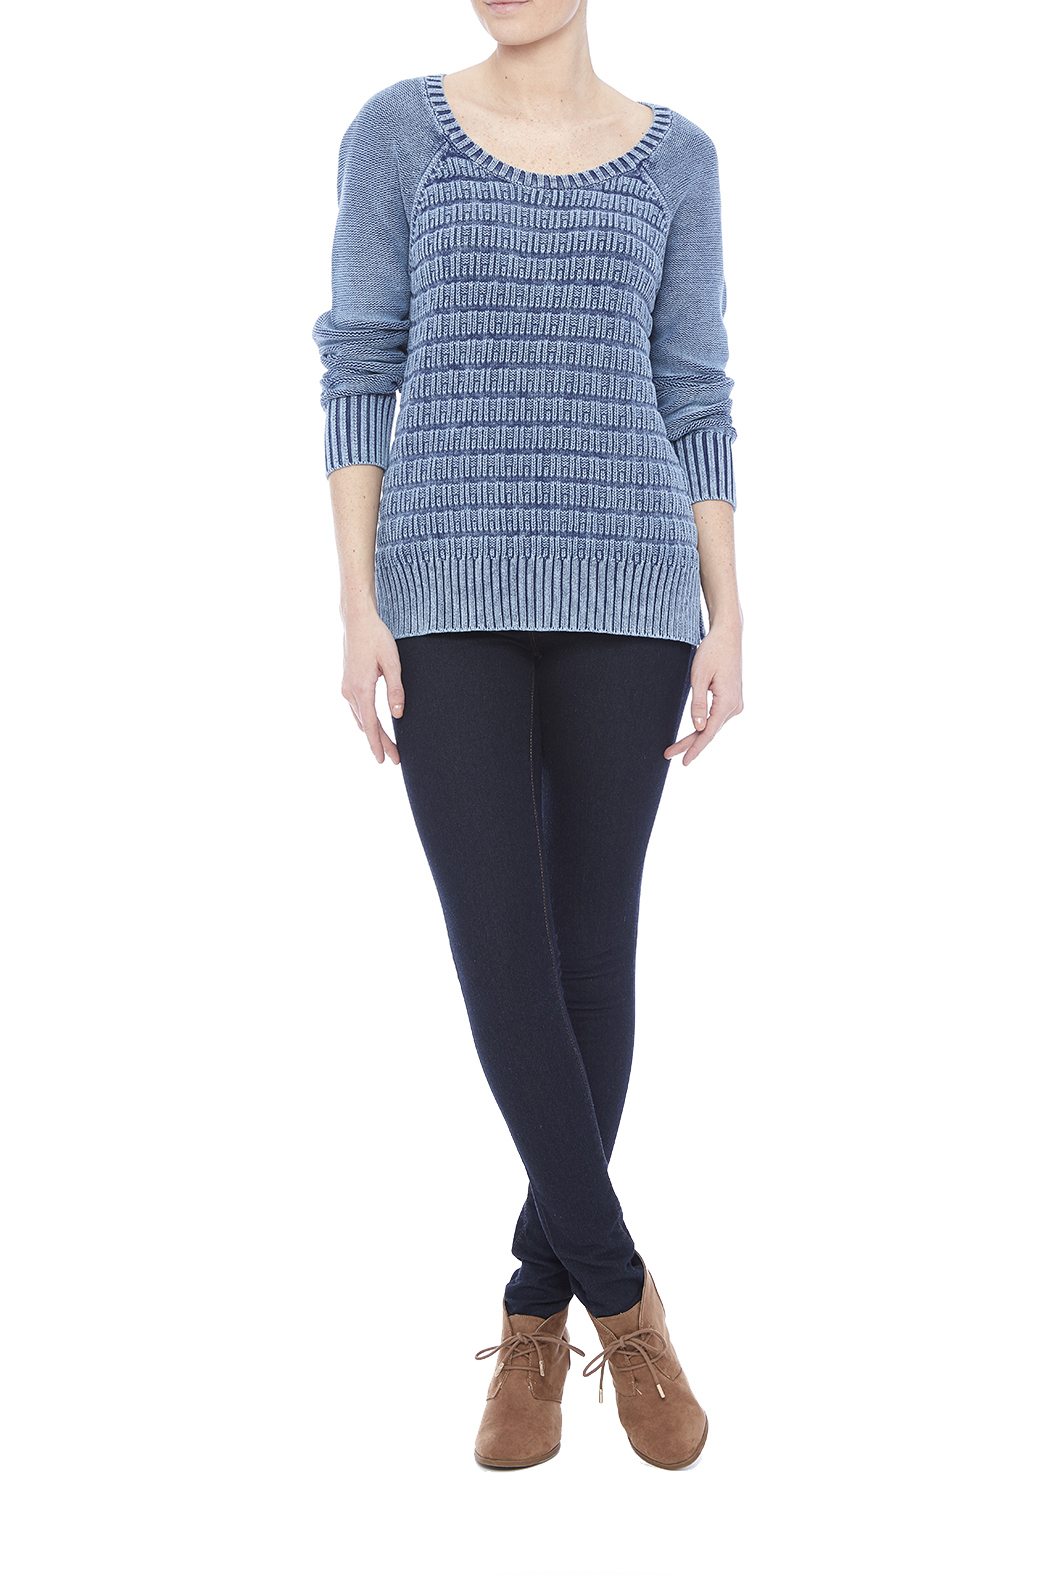 Three Dots Lindsey Cotton Sweater - Front Full Image